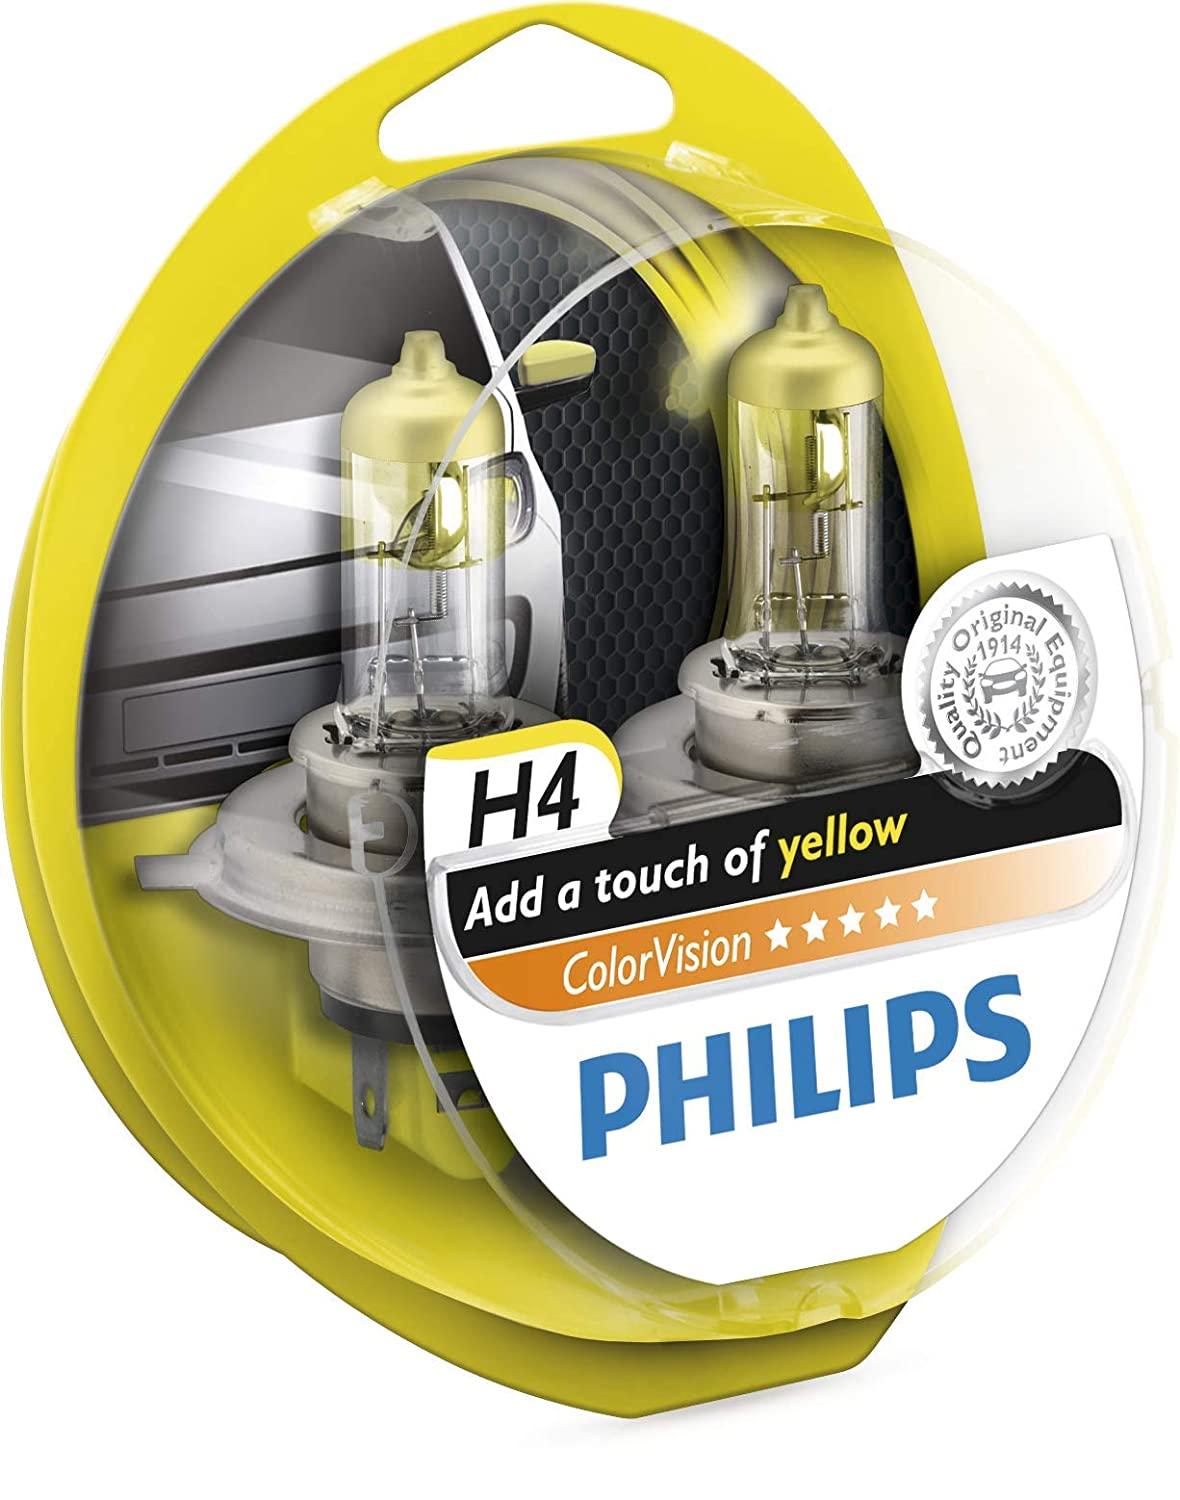 Philips ColorVision Bombilla para faros delanteros amarilla 12342CVPYS2, bombilla para coches (60W, H4/H7, Fog light, High beam, Luz interior, Low beam, ...